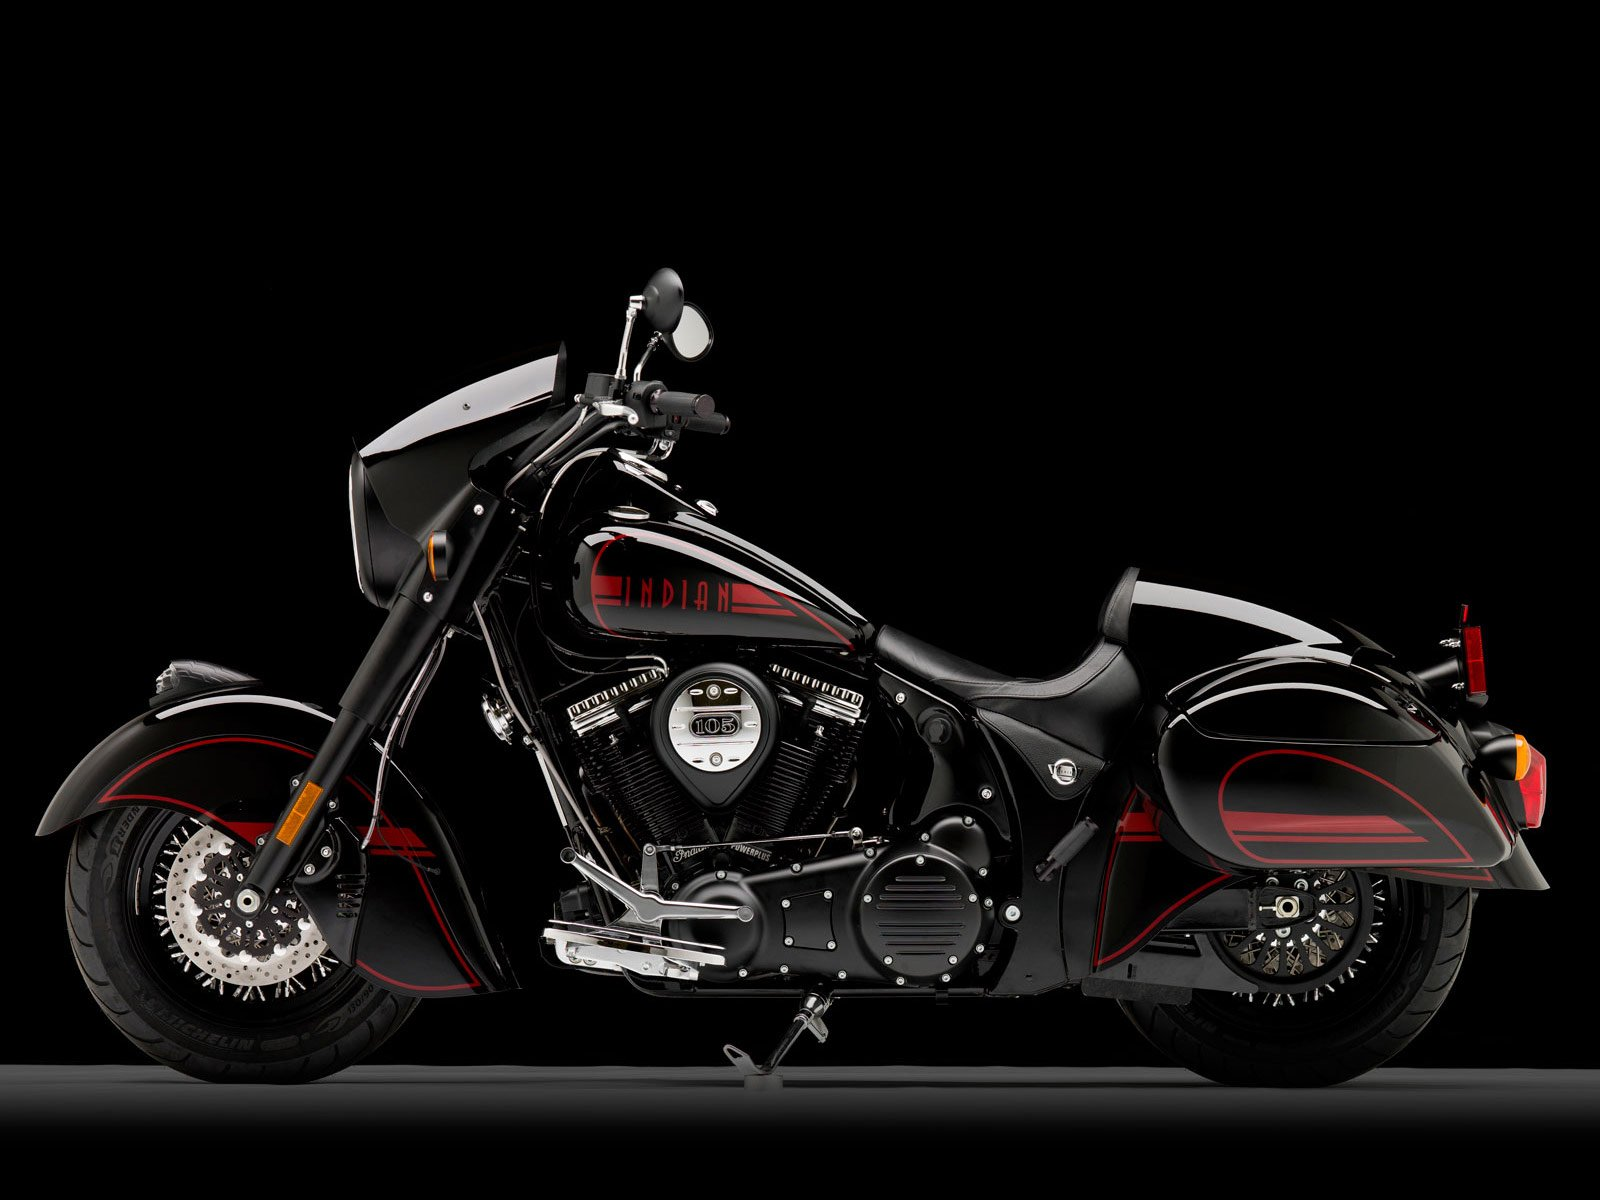 Motorcycle brand pictures specification review insurance 1600x1200